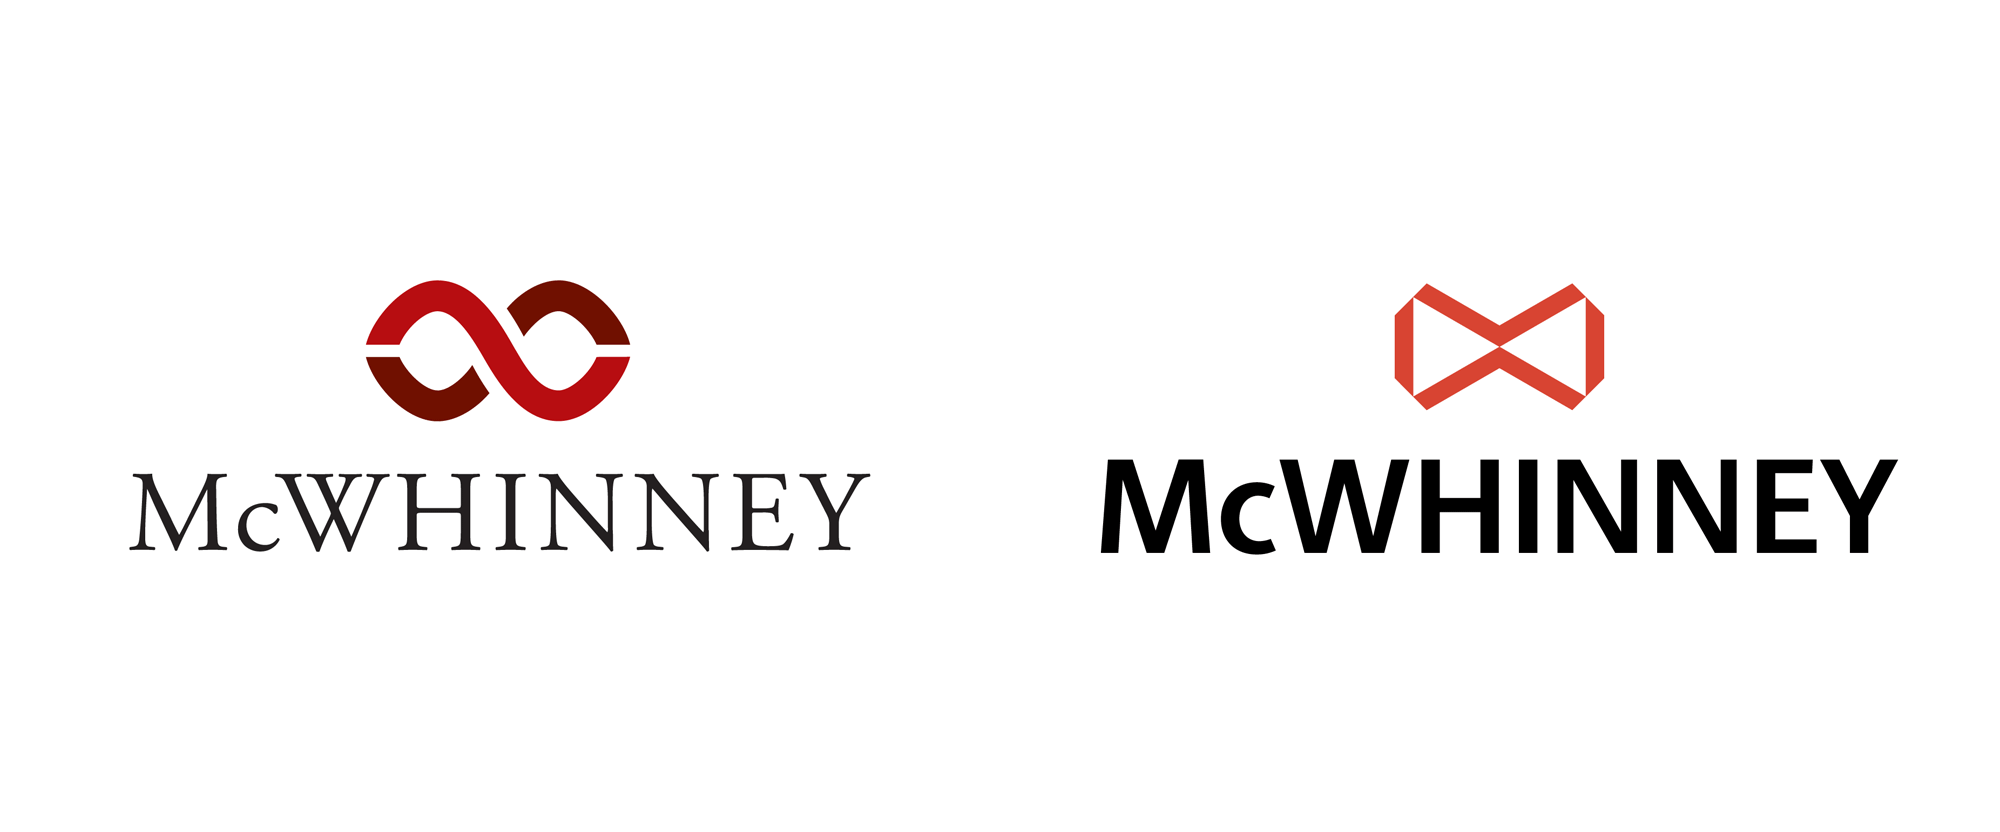 New Logo and Identity for McWhinney by Matt Yow and Empathy Office